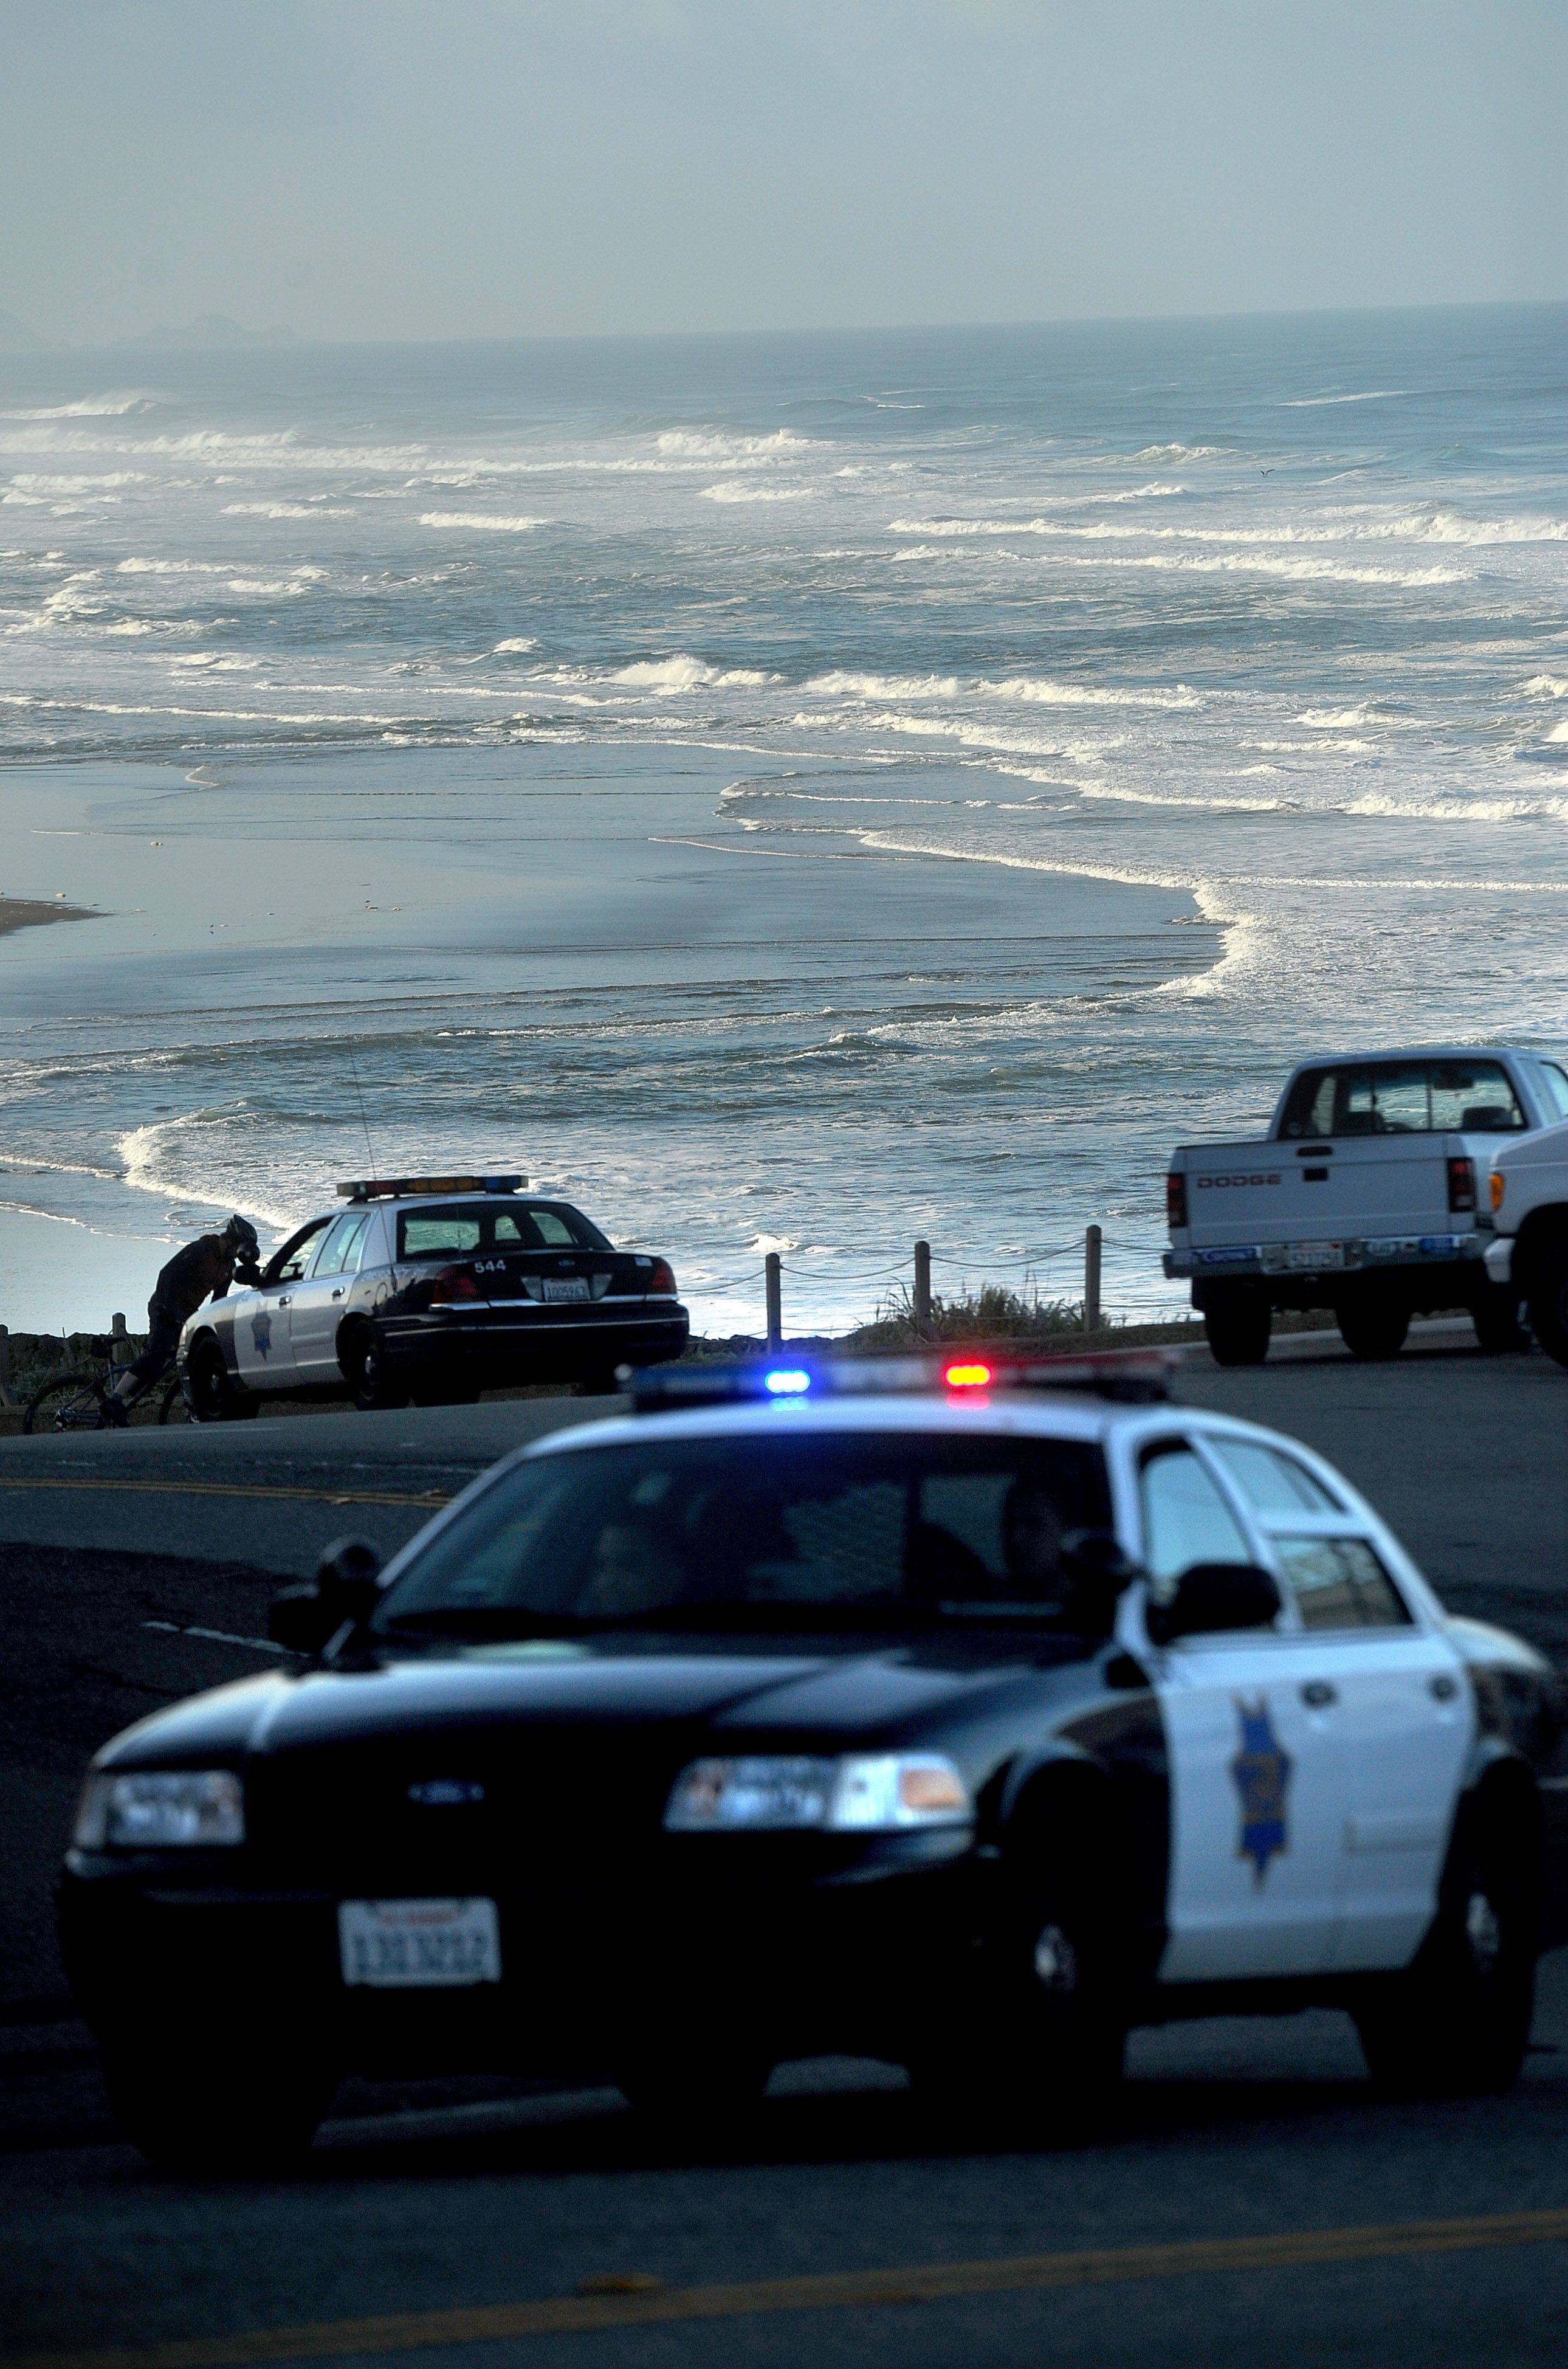 With a tsunami warning in effect for Northern California, police patrol along San Francisco's Great Highway on Friday, March 11, 2011. Tsunami warnings were issued after an 8.9-magnitude earthquake struck Japan.